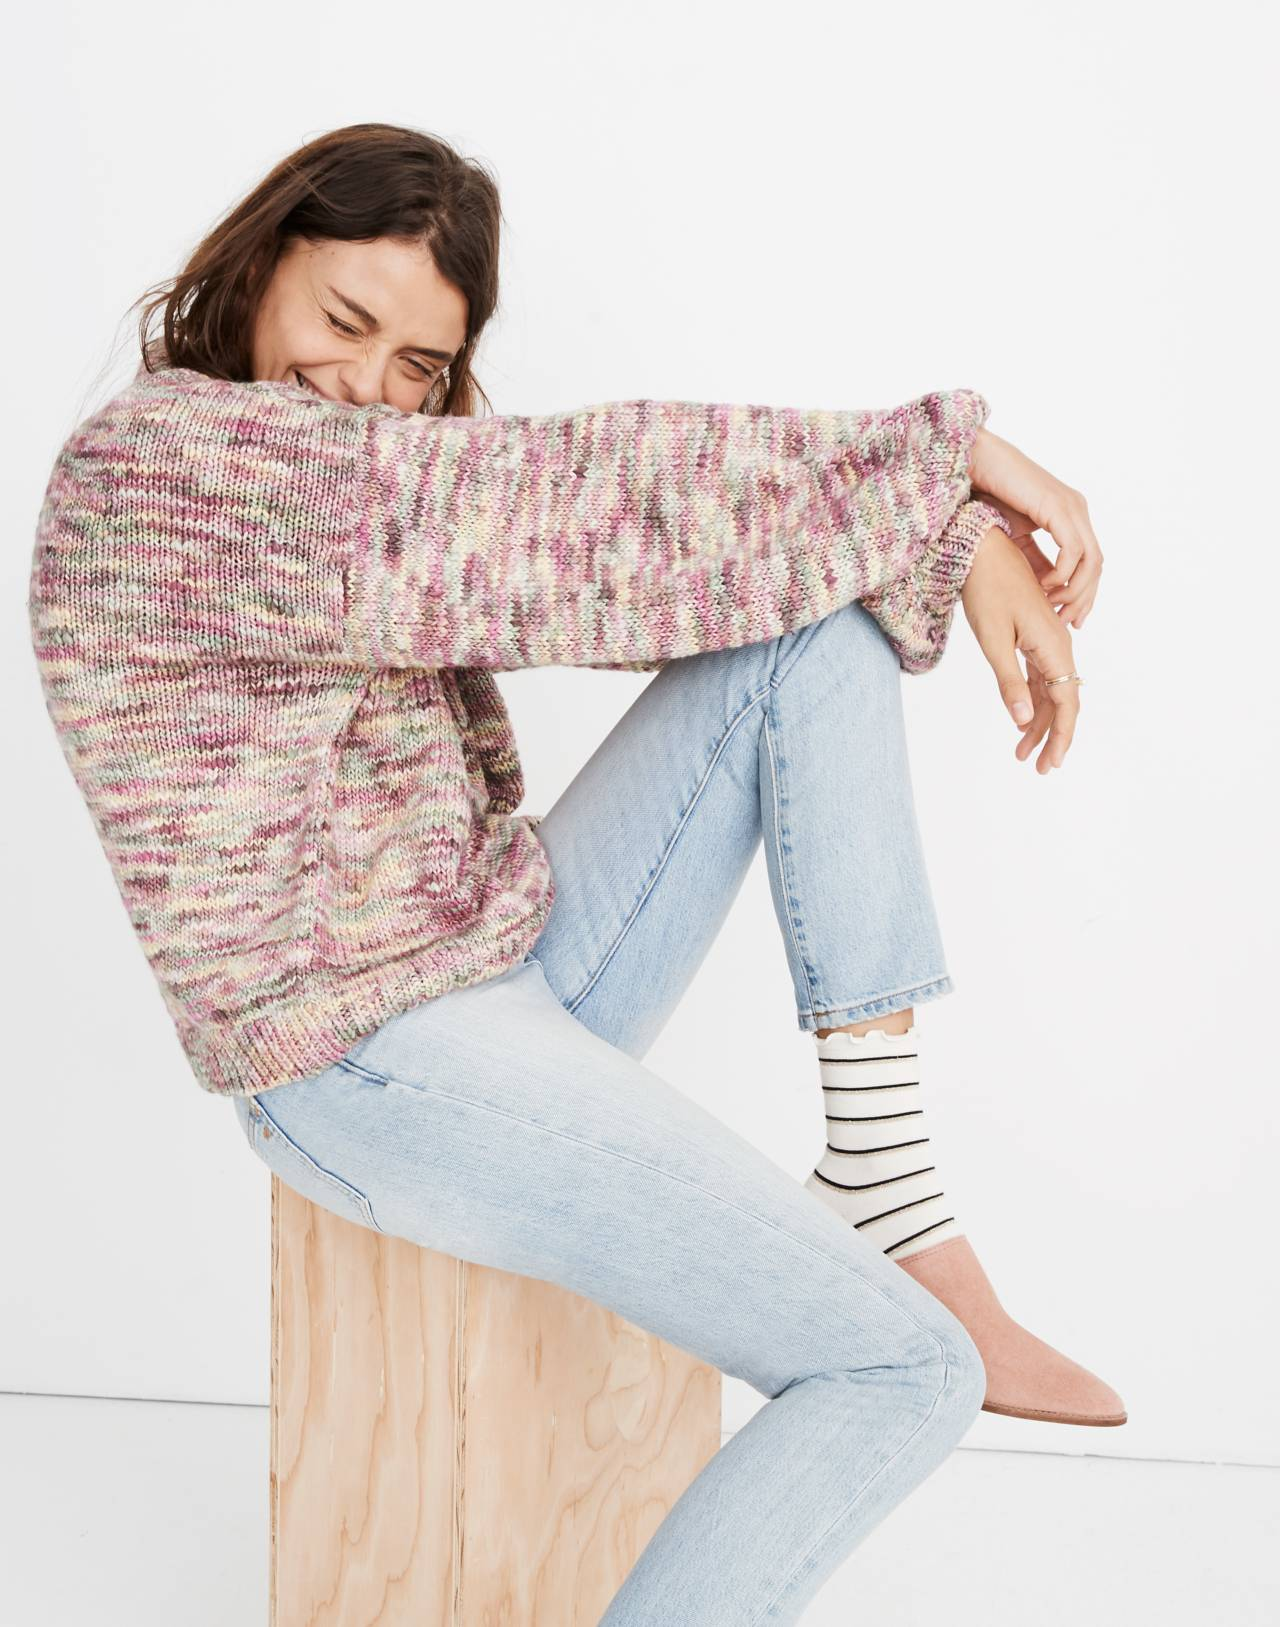 Madewell x Manos del Uruguay™ Space-Dyed Pullover Sweater in pink space image 2